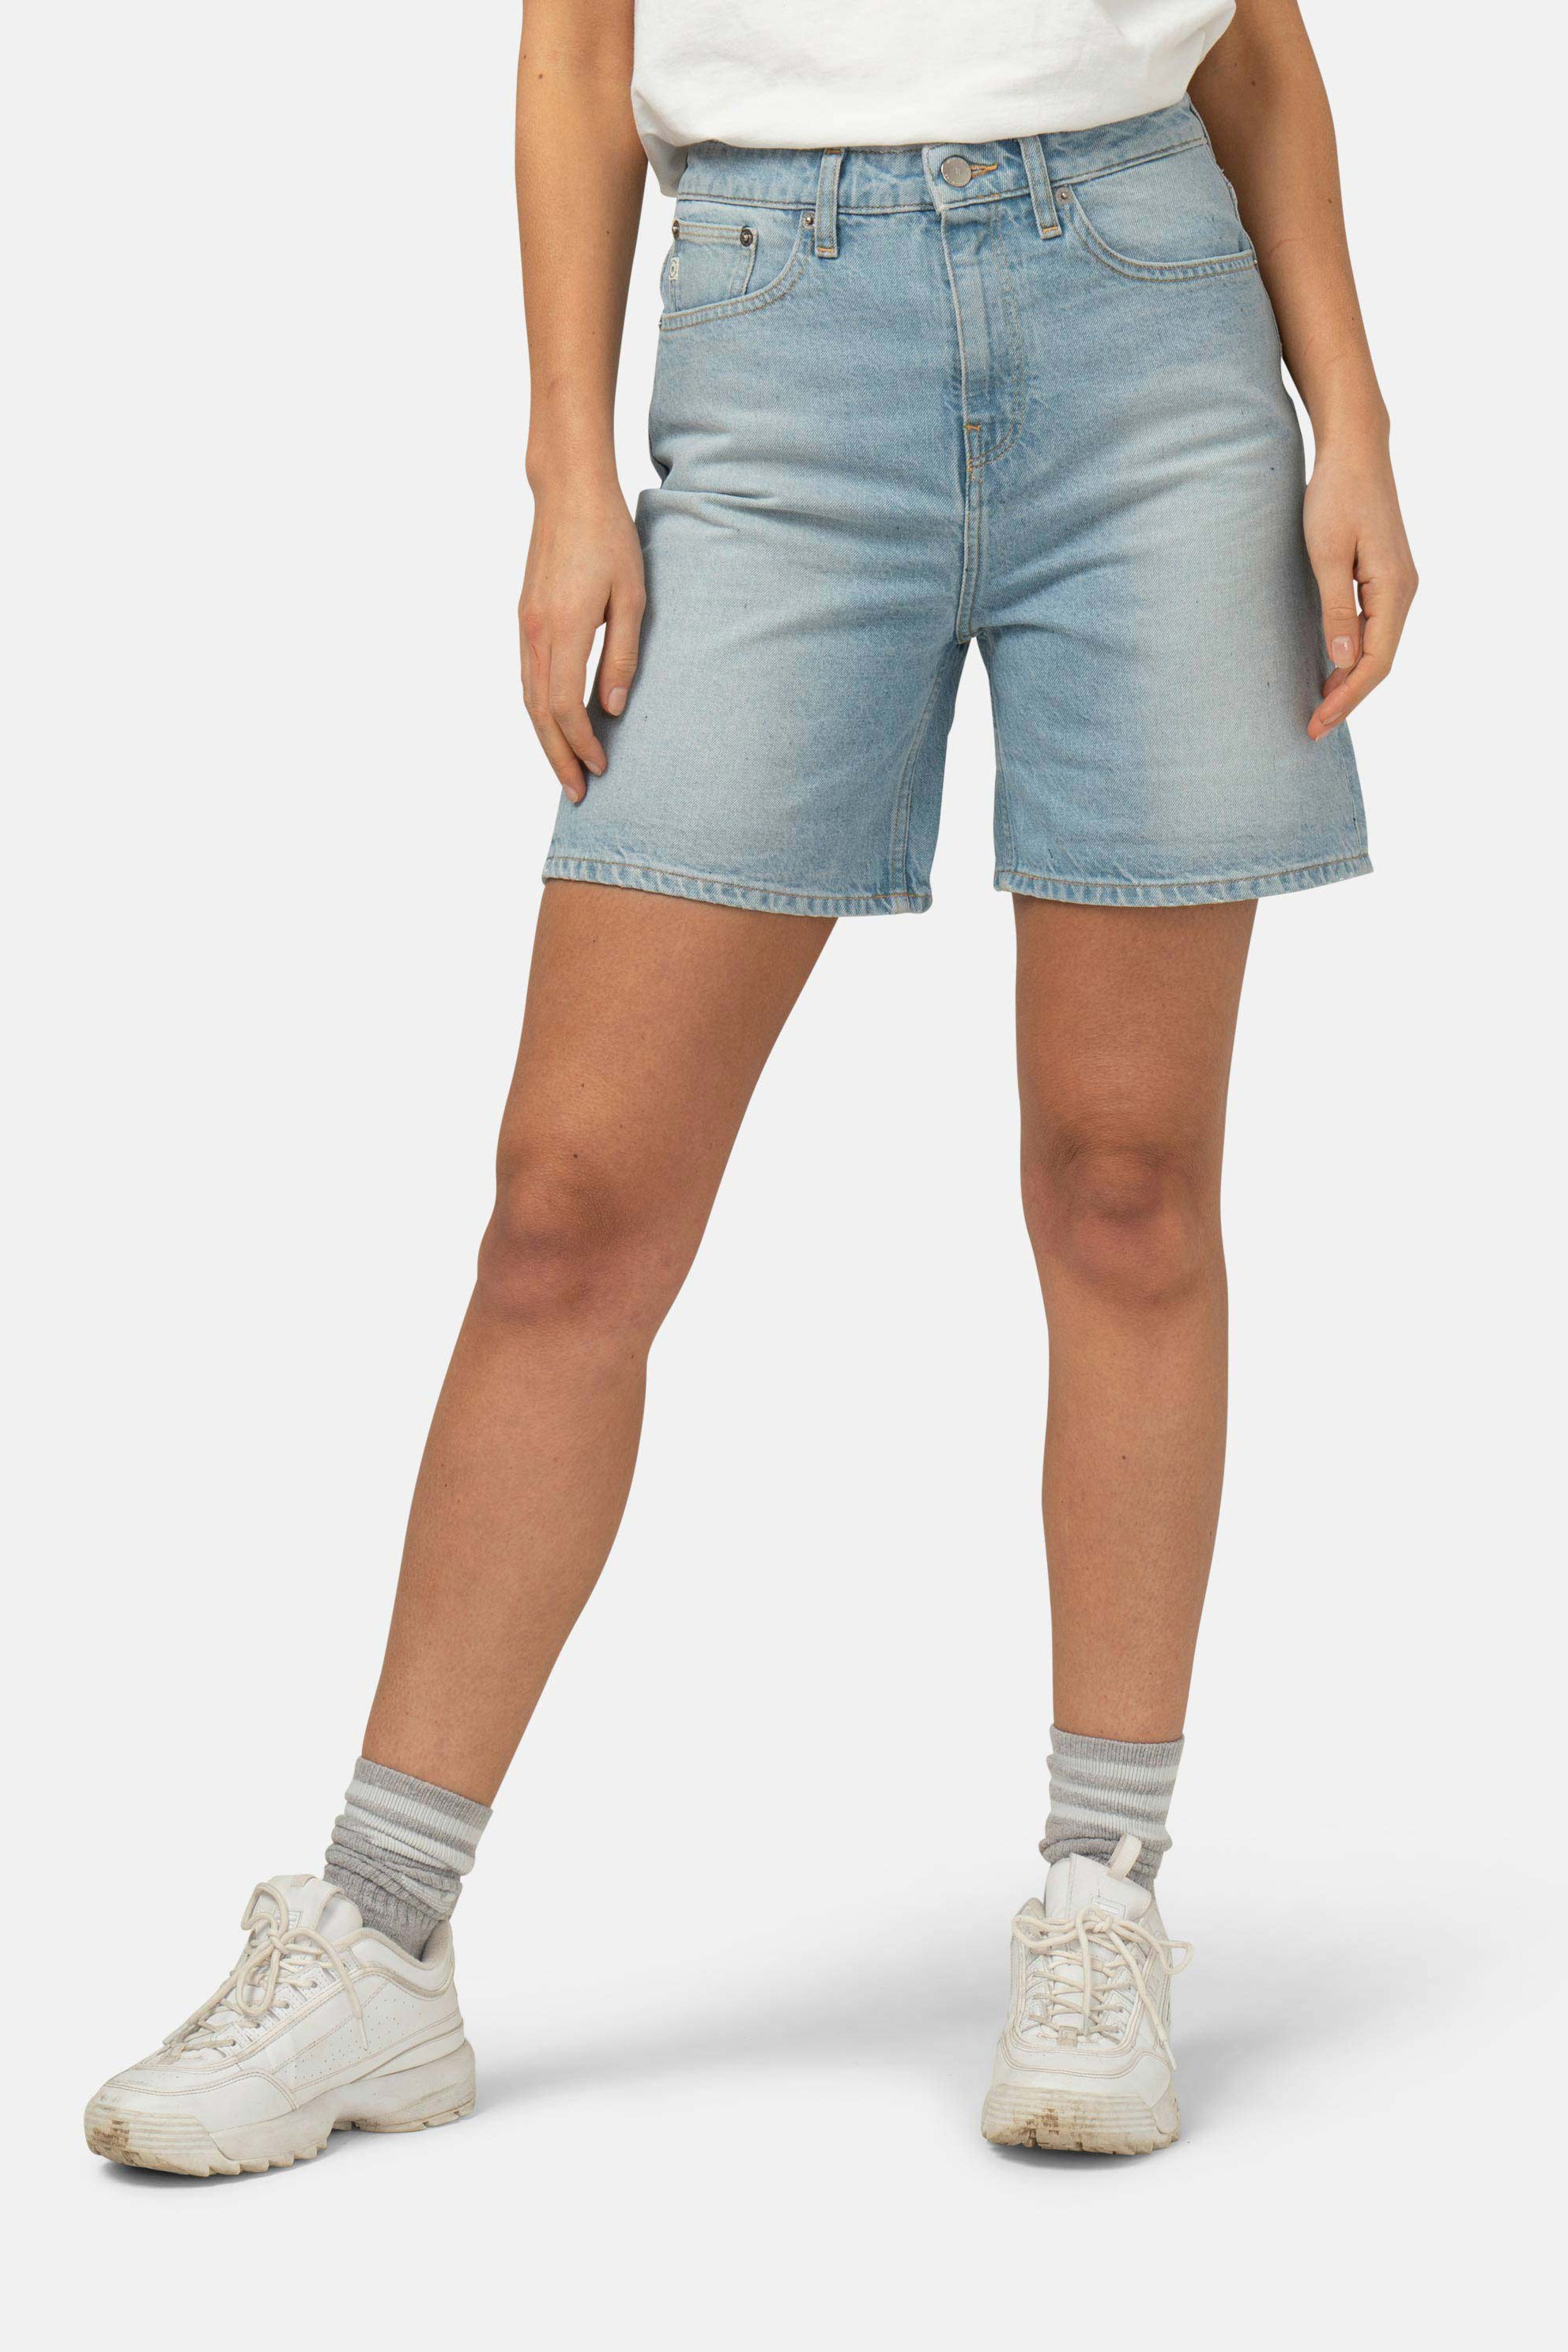 Shorts Beverly from LOVECO